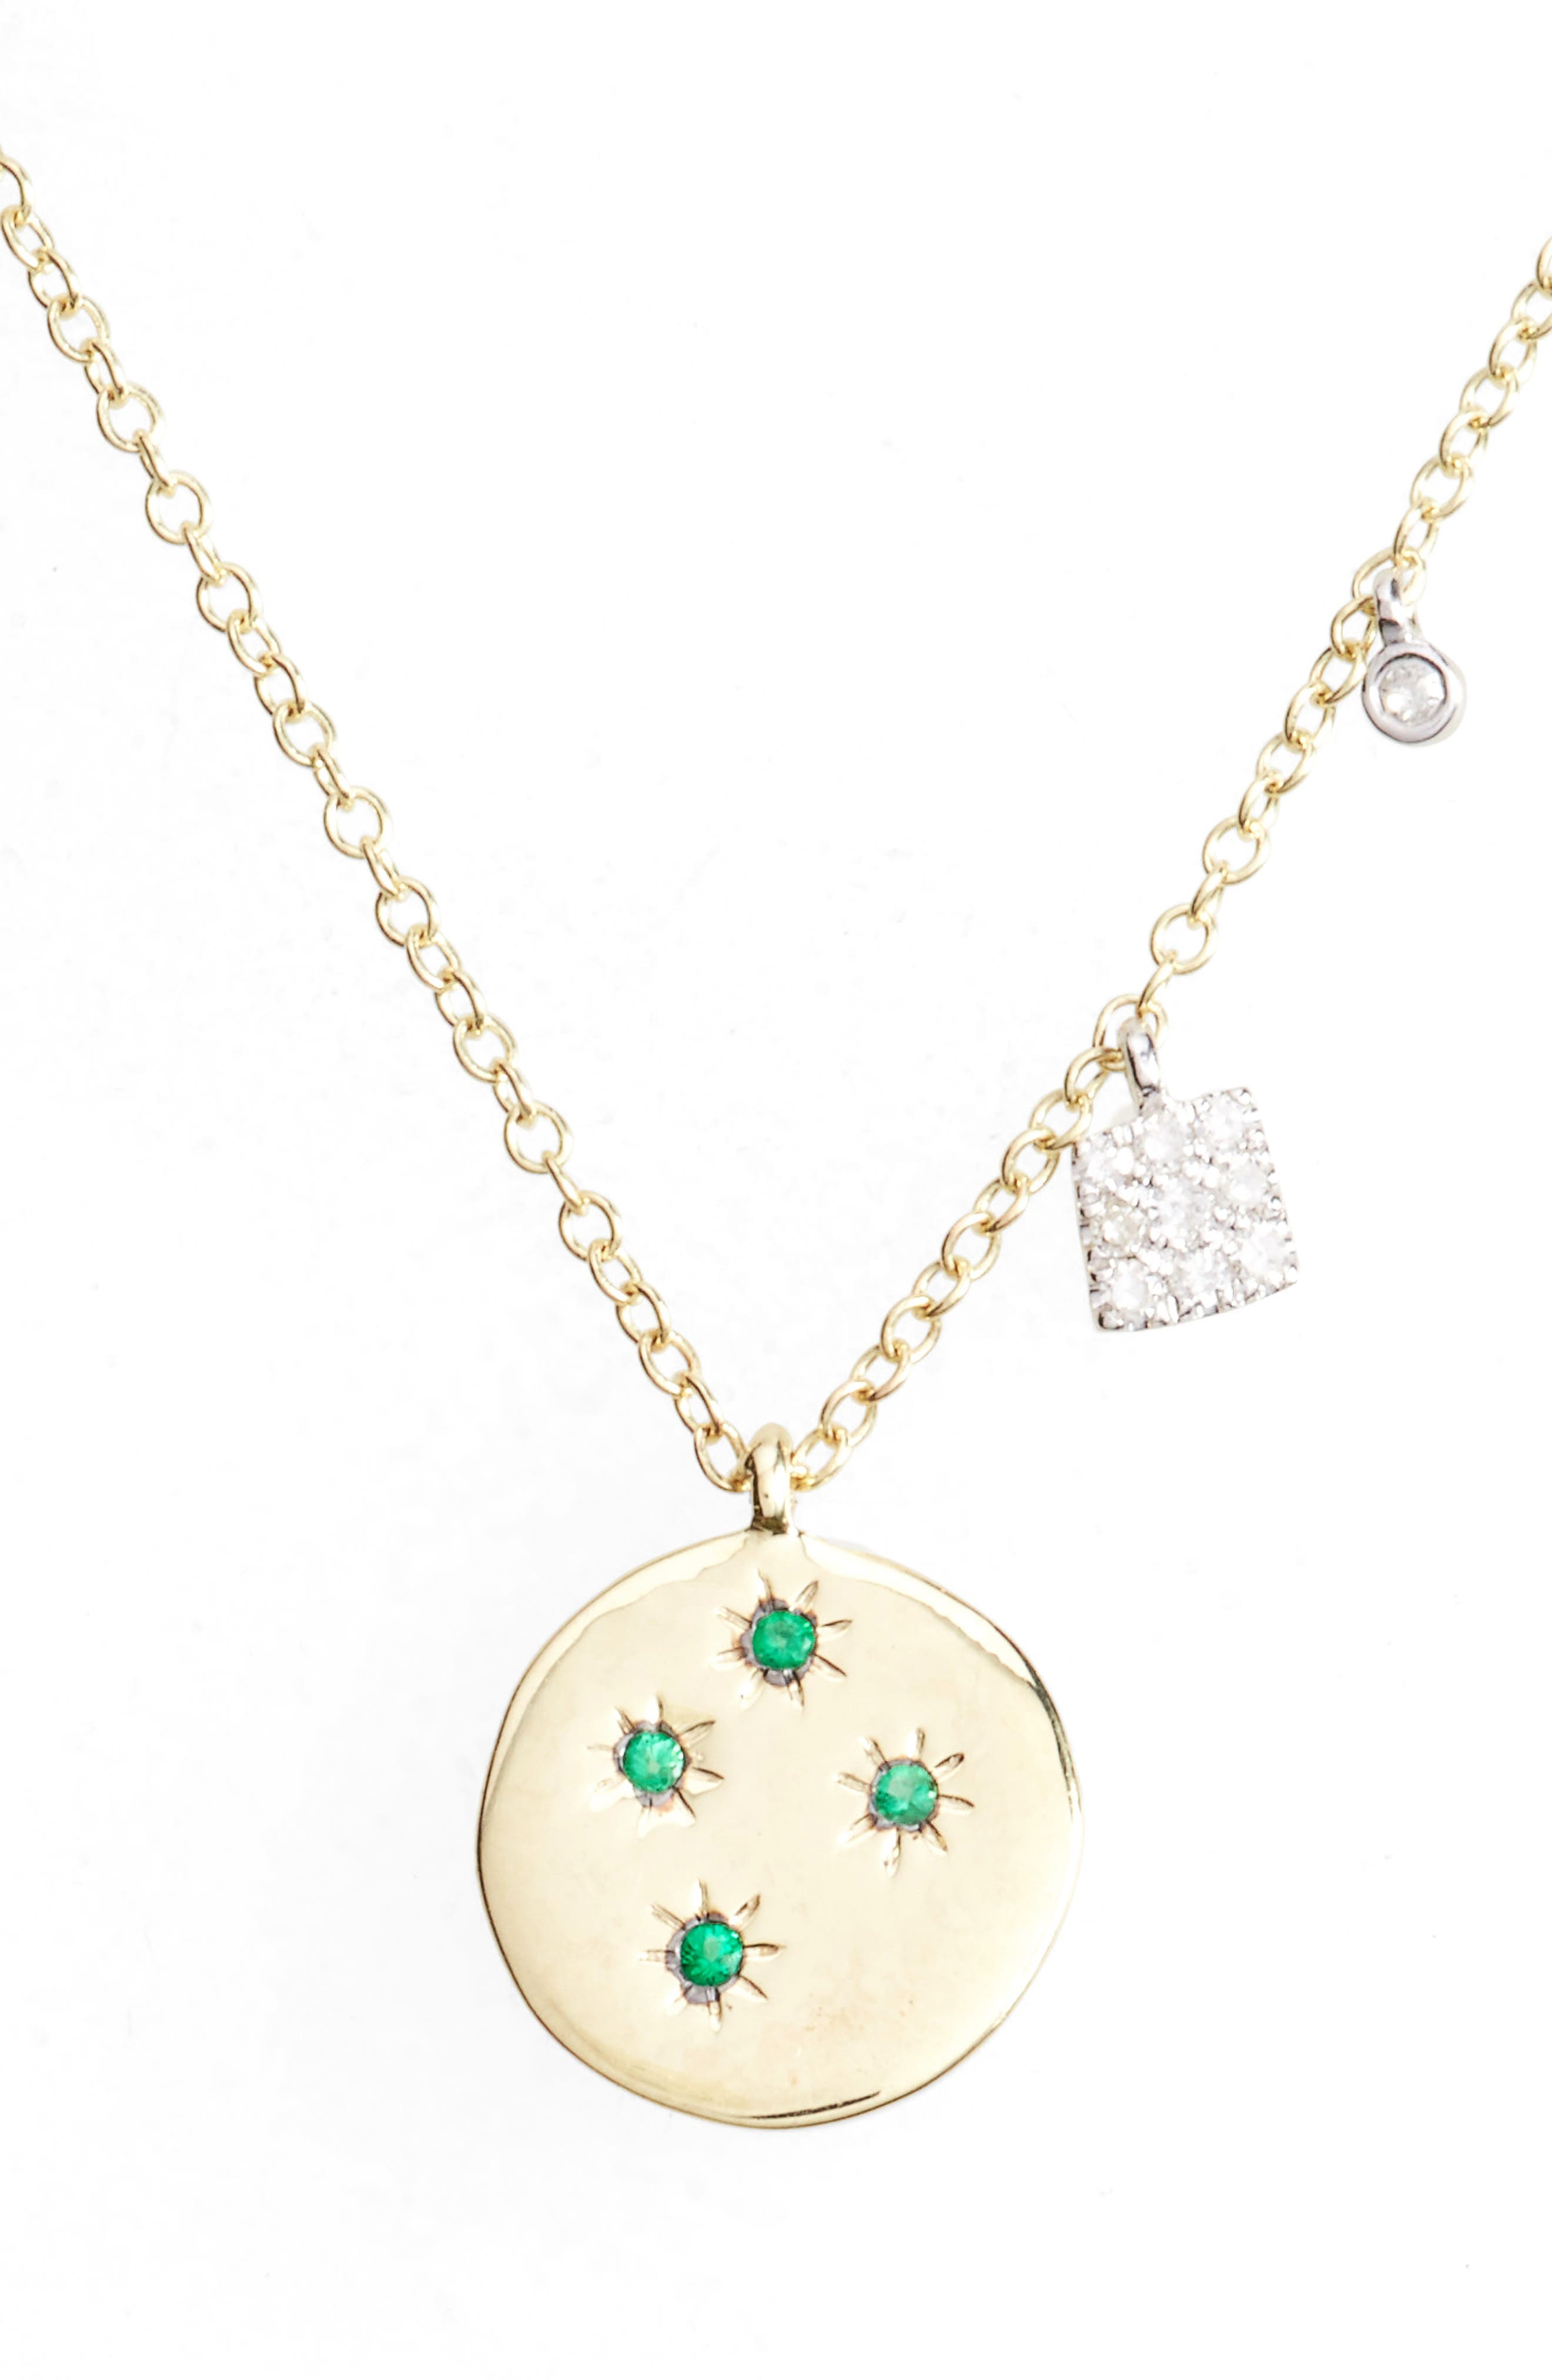 Diamond & Gemstone Pendant Necklace,                             Main thumbnail 1, color,                             Yellow Gold/ Emerald